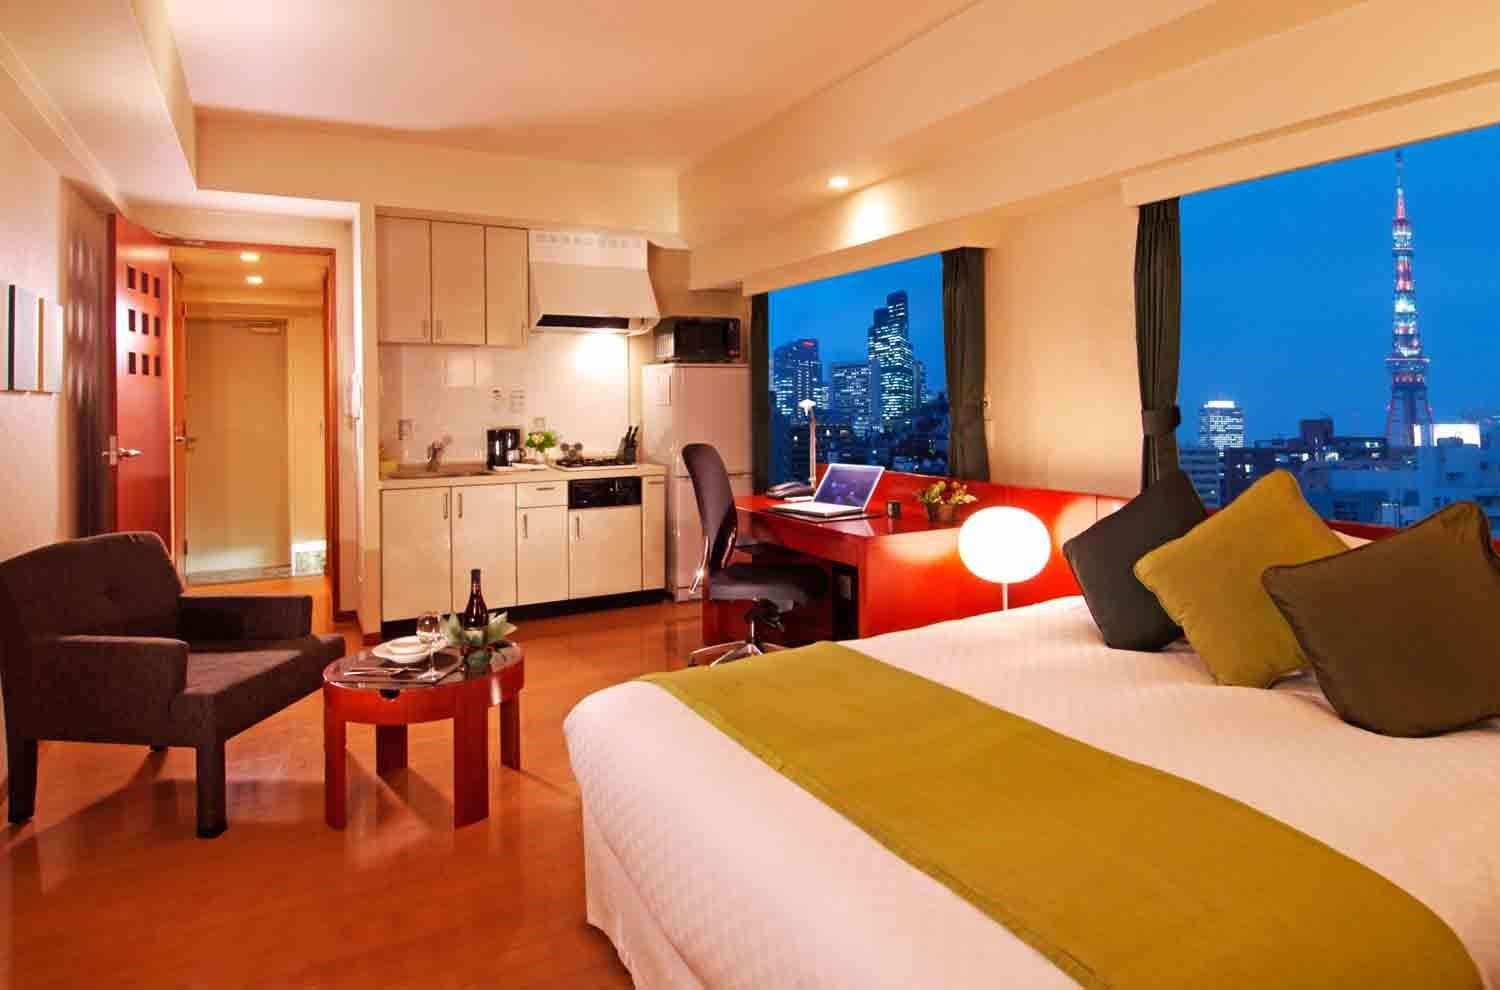 An alternative to booking a hotel for family breaks